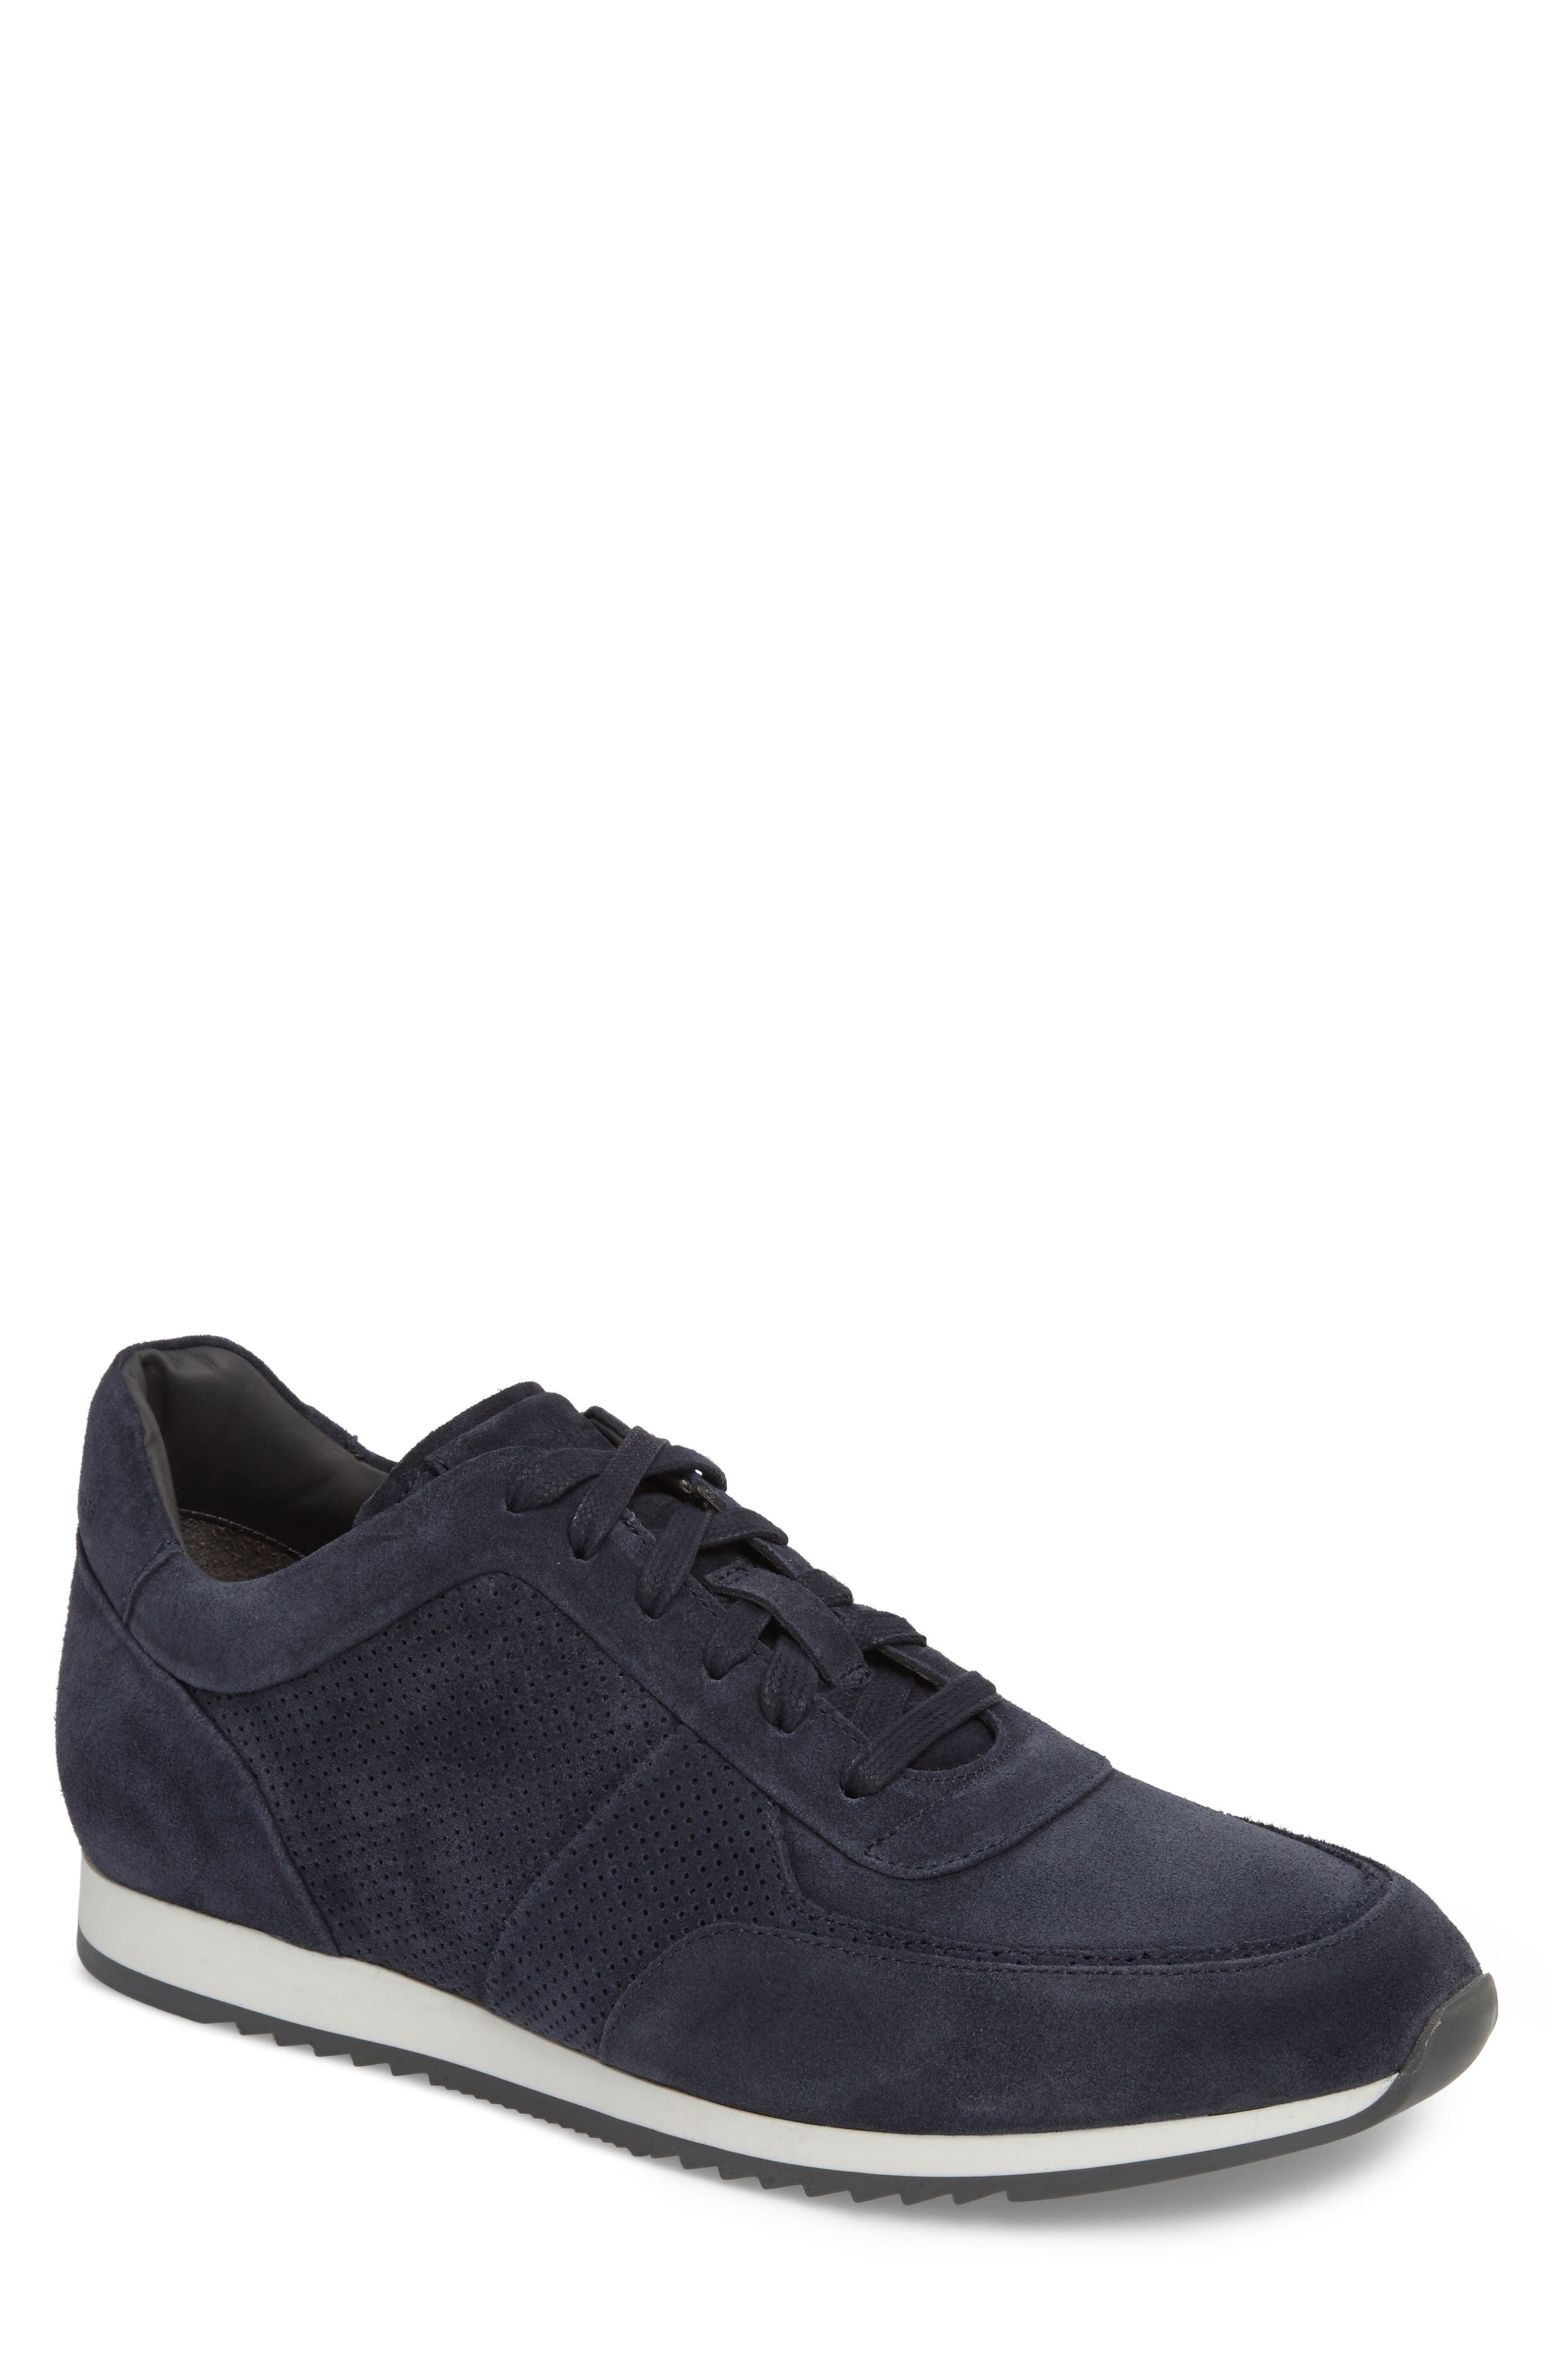 Fordham Low Top Sneaker,                         Main,                         color, Space Blue Suede